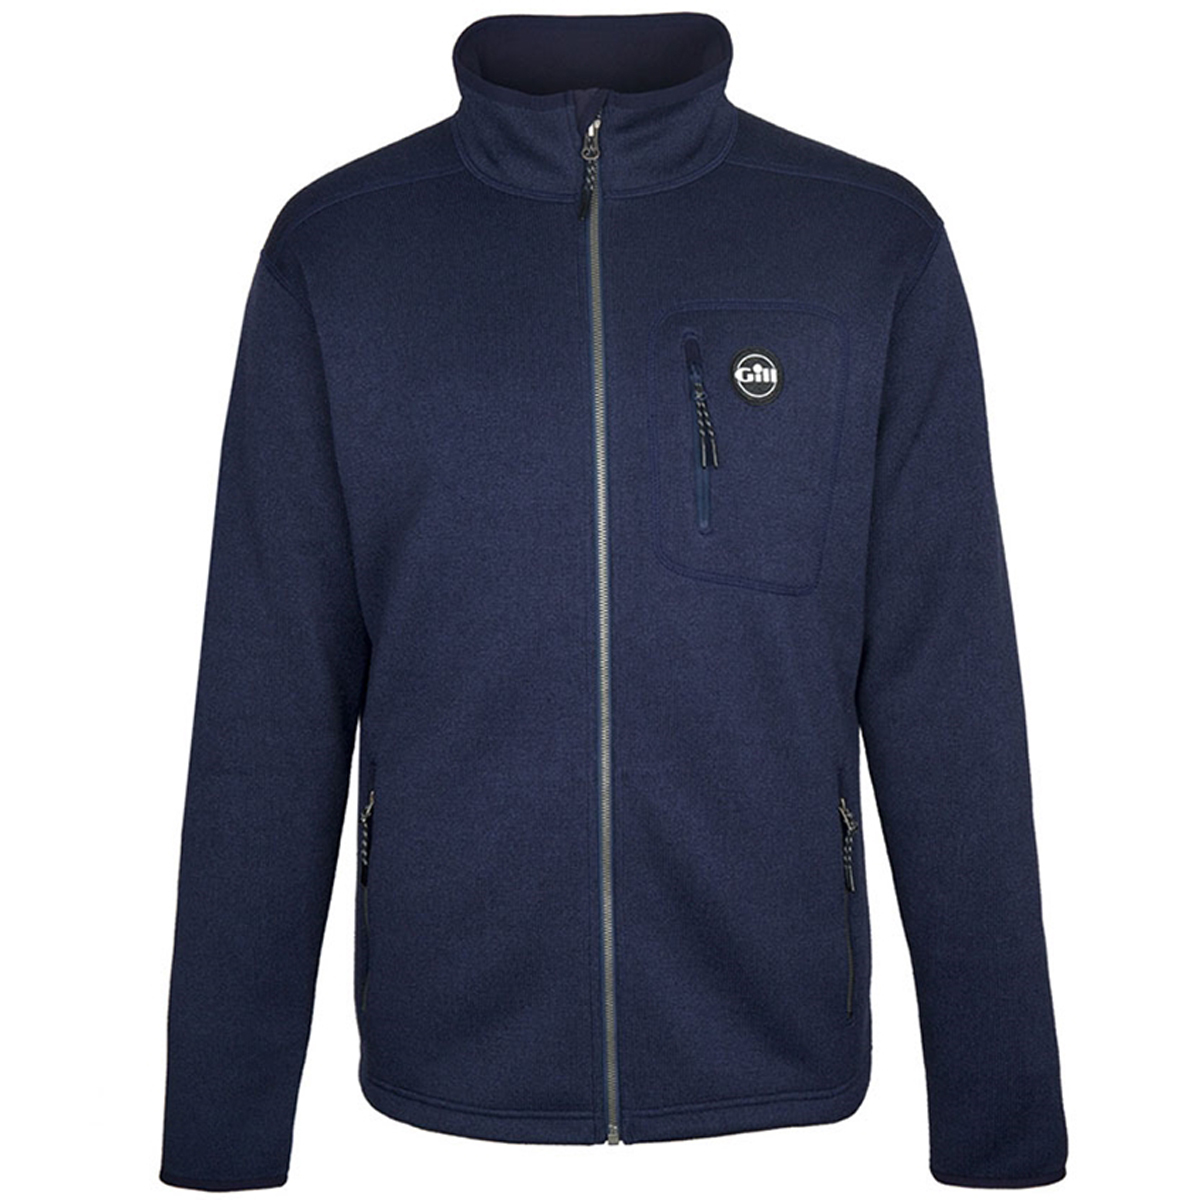 Gill Men's Knit Fleece Jacket (1493)